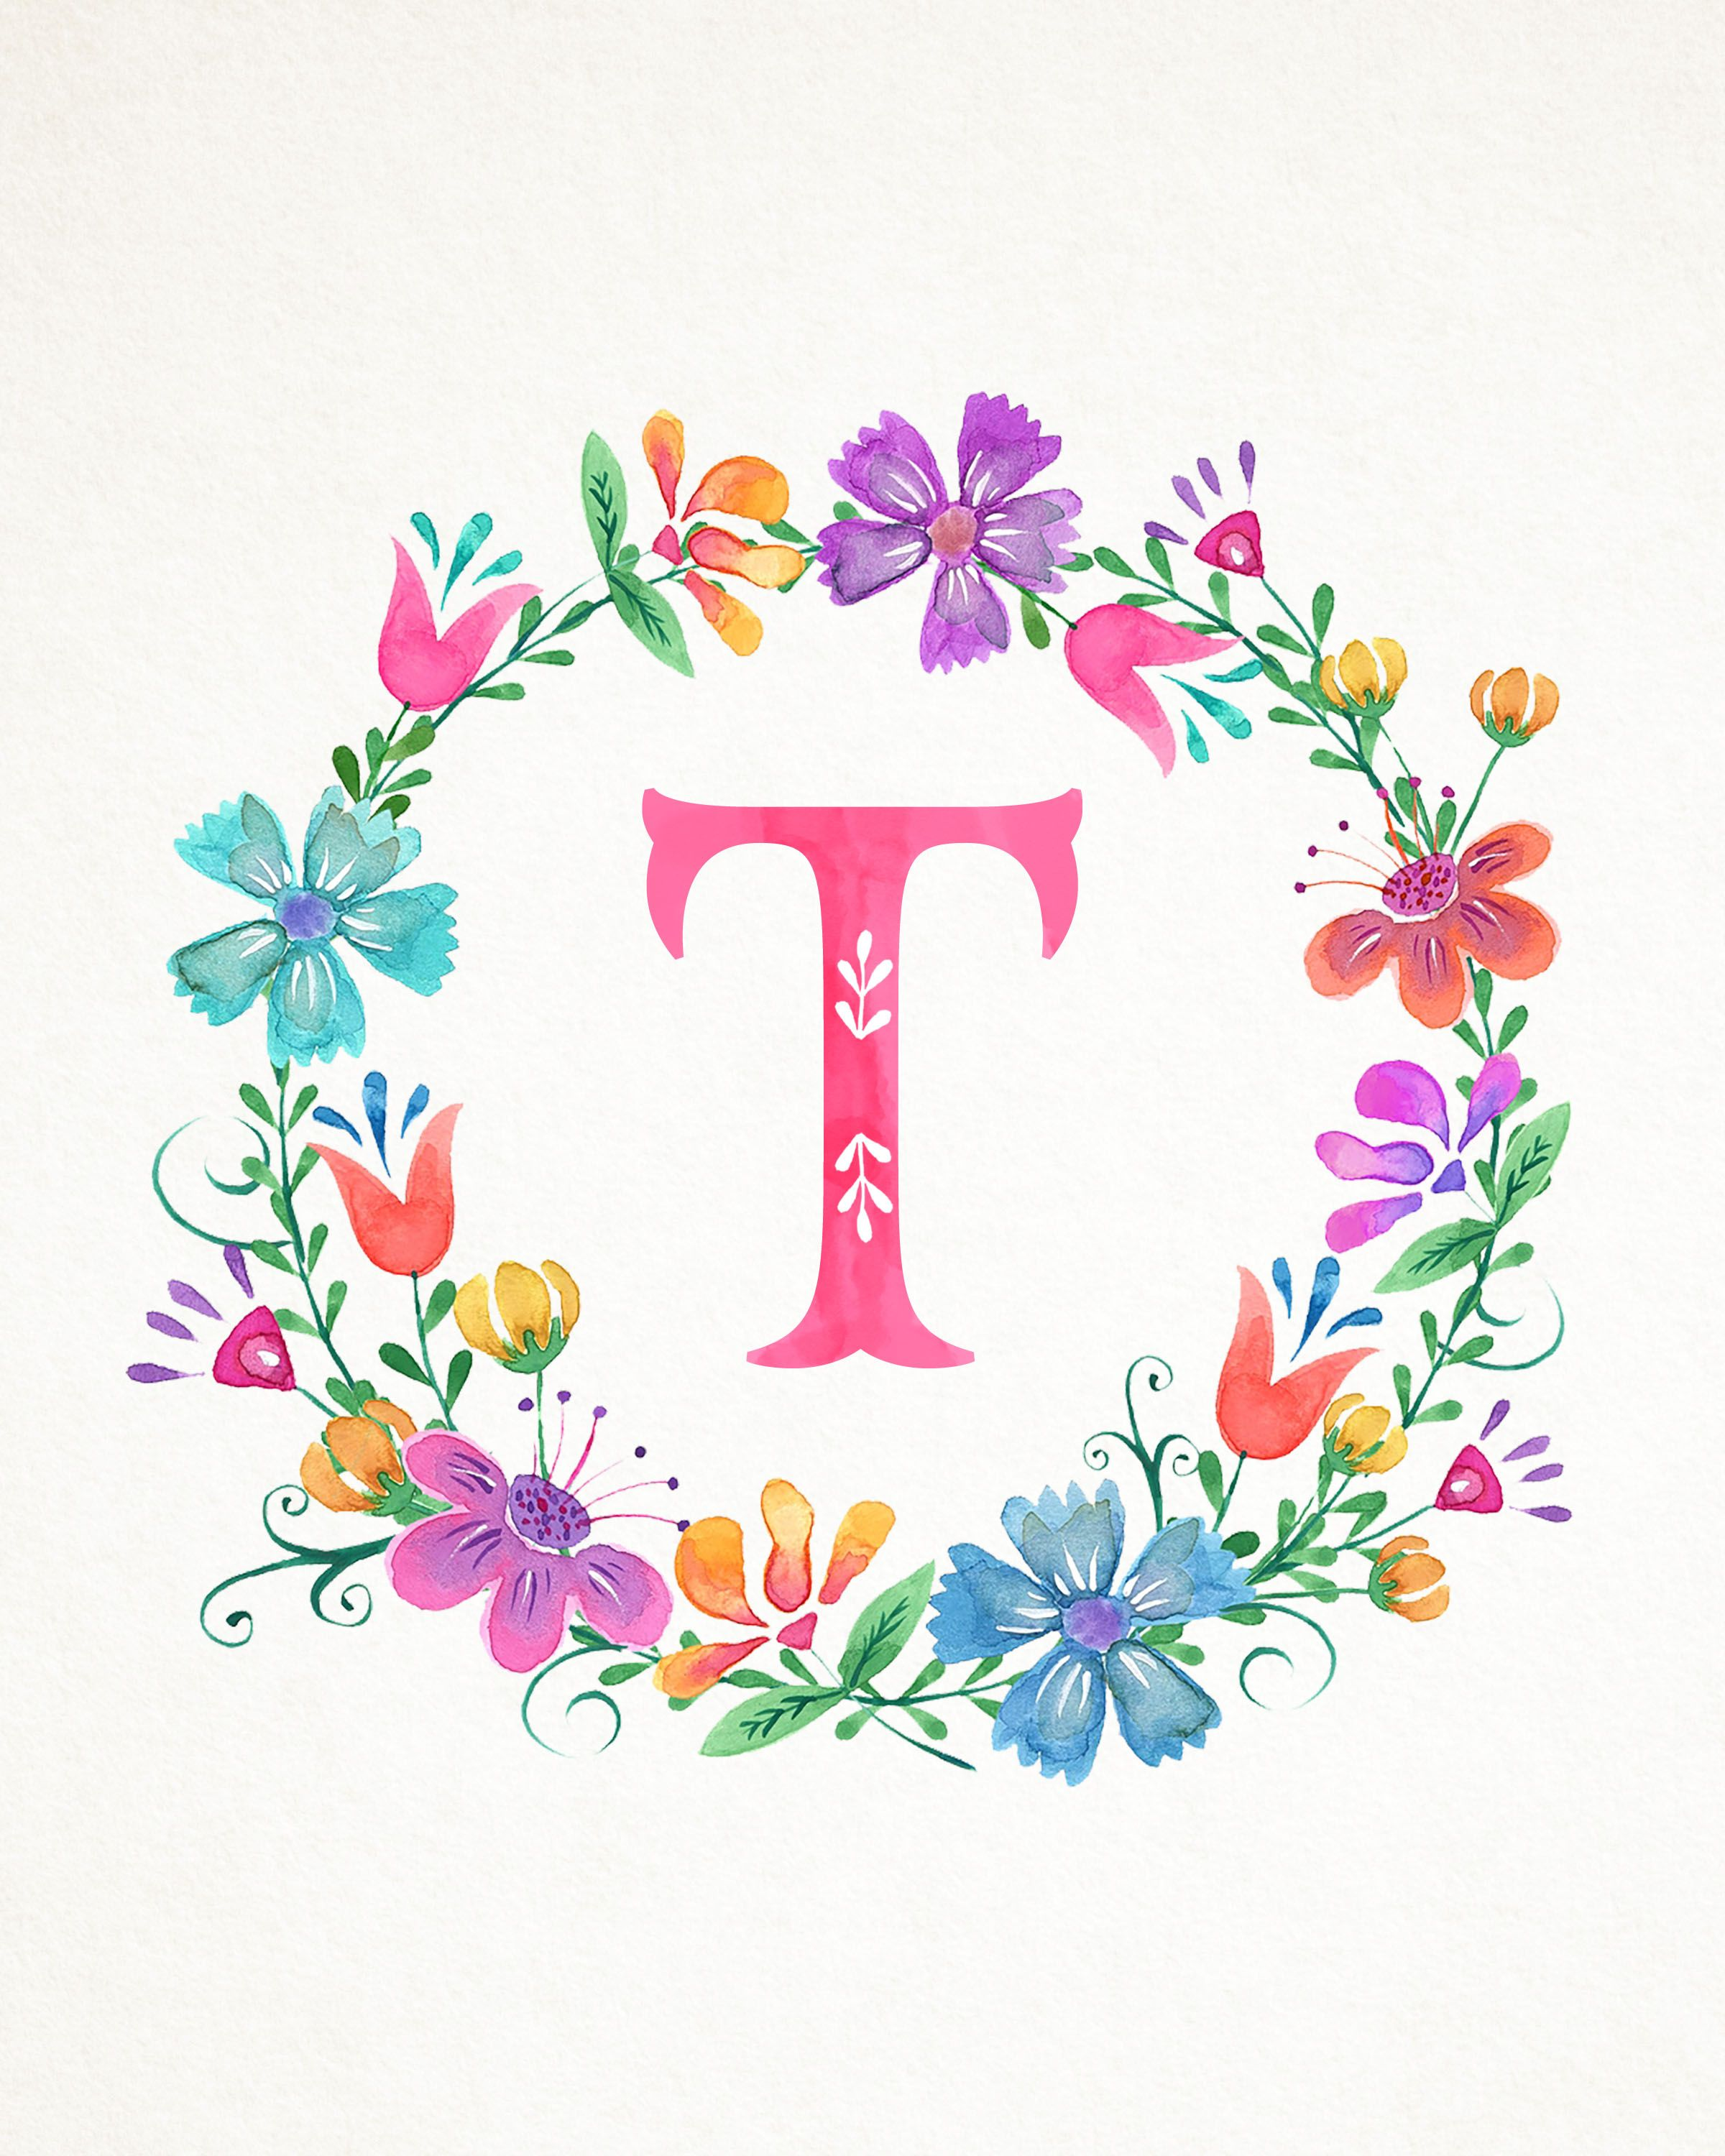 Pin by Fadila on Flores VII Floral letters Monogram wallpaper 2400x3000